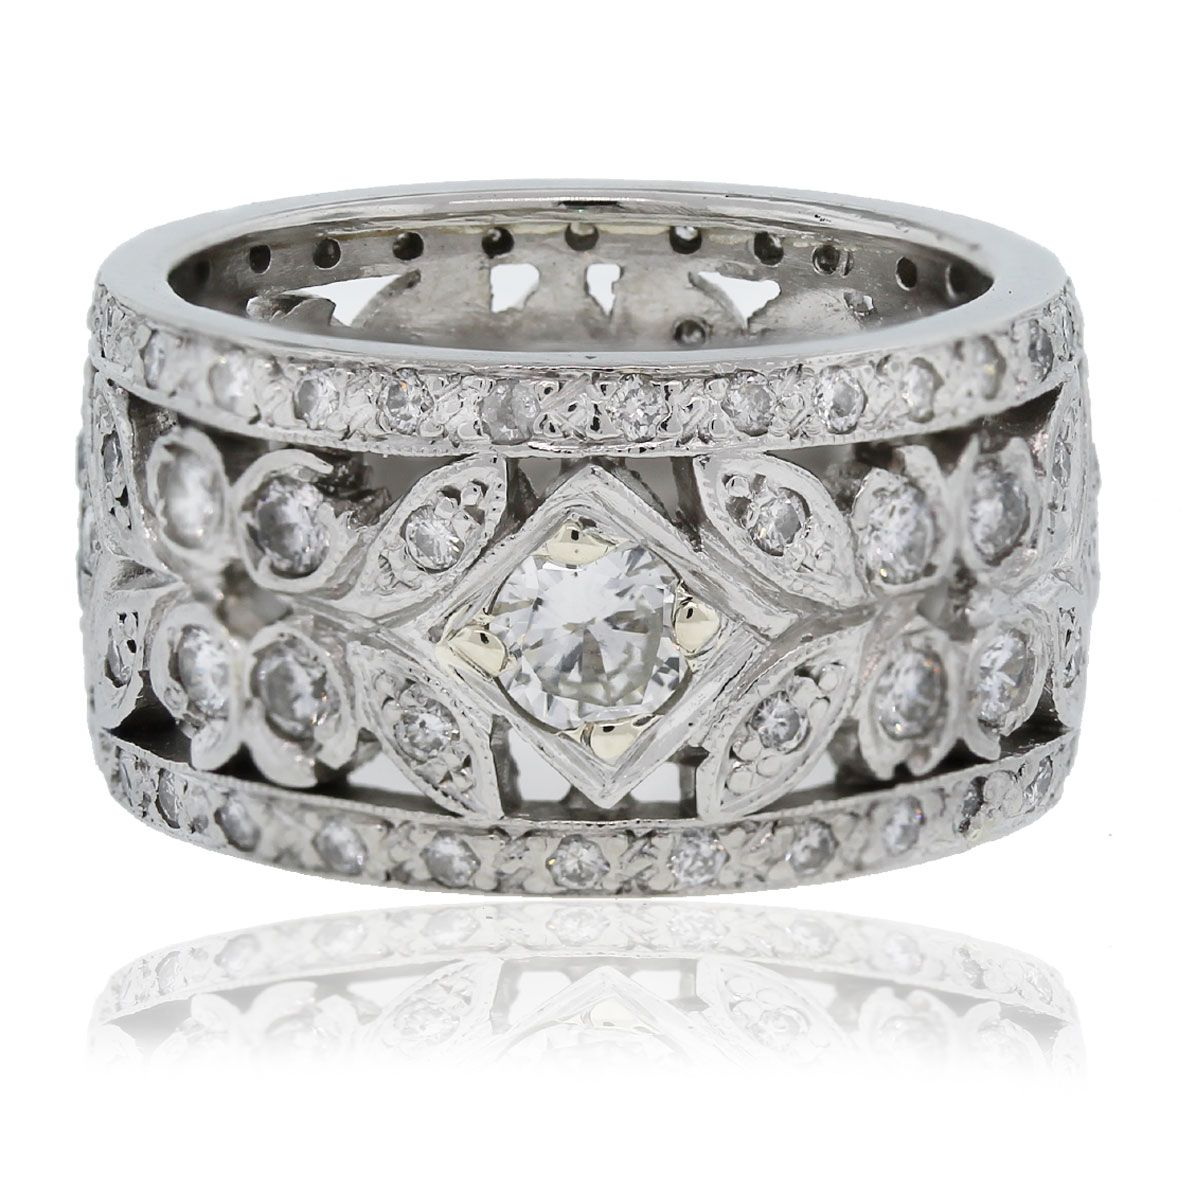 statement band wide cz faux diamond sparkles silver silvertone cluster beloved cocktail zirconia tina carat paved cubic ring eternity products bands